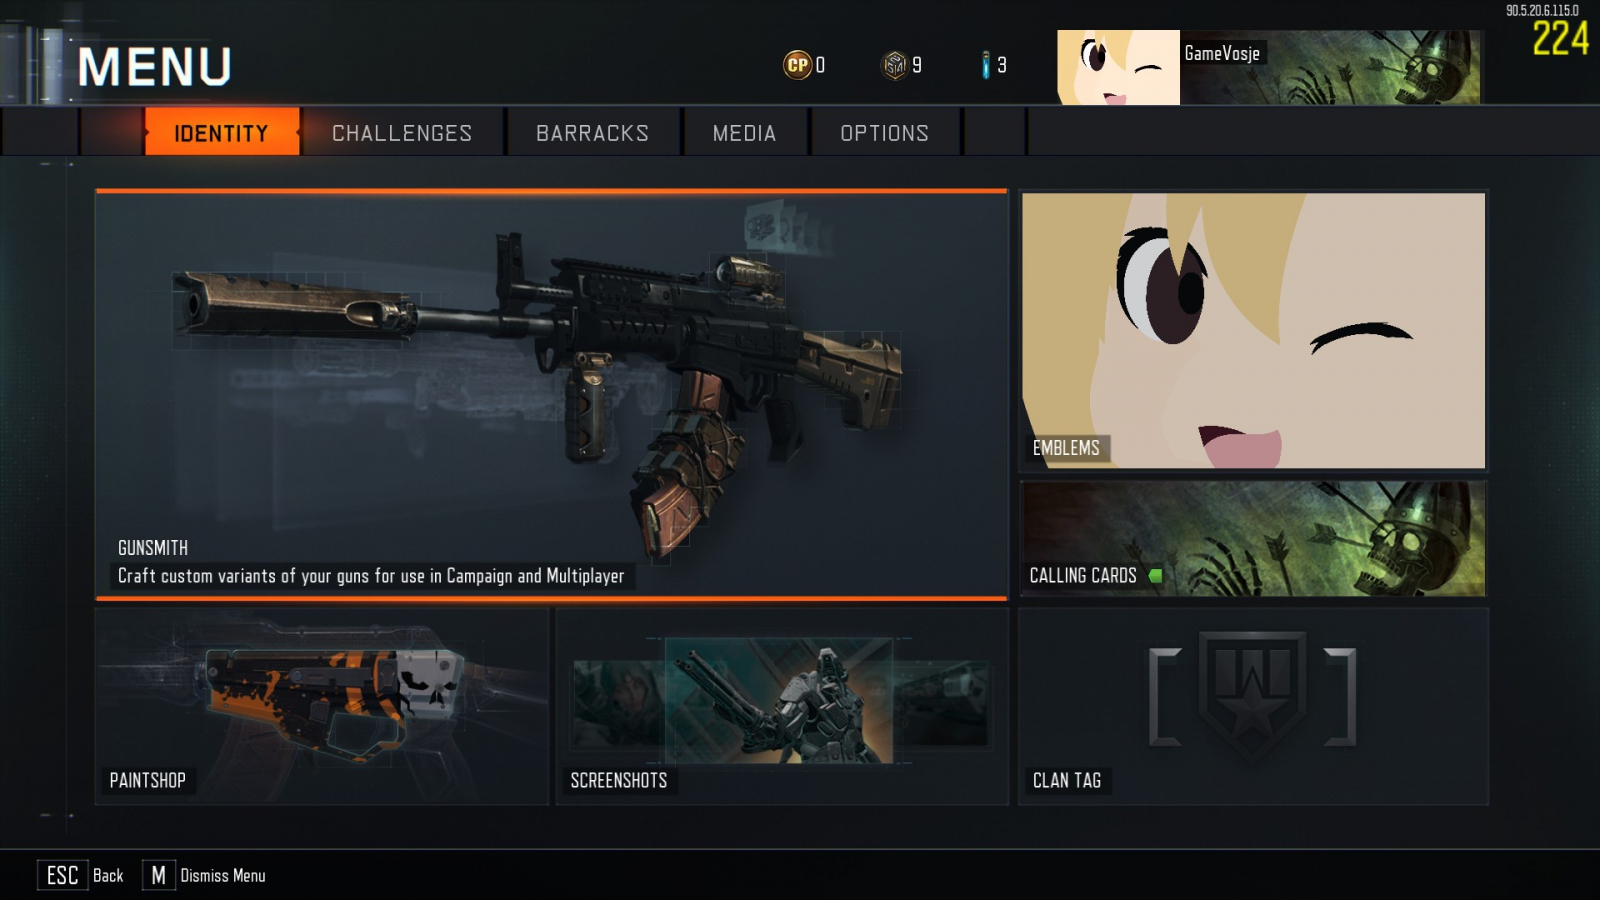 My emblem and calling card